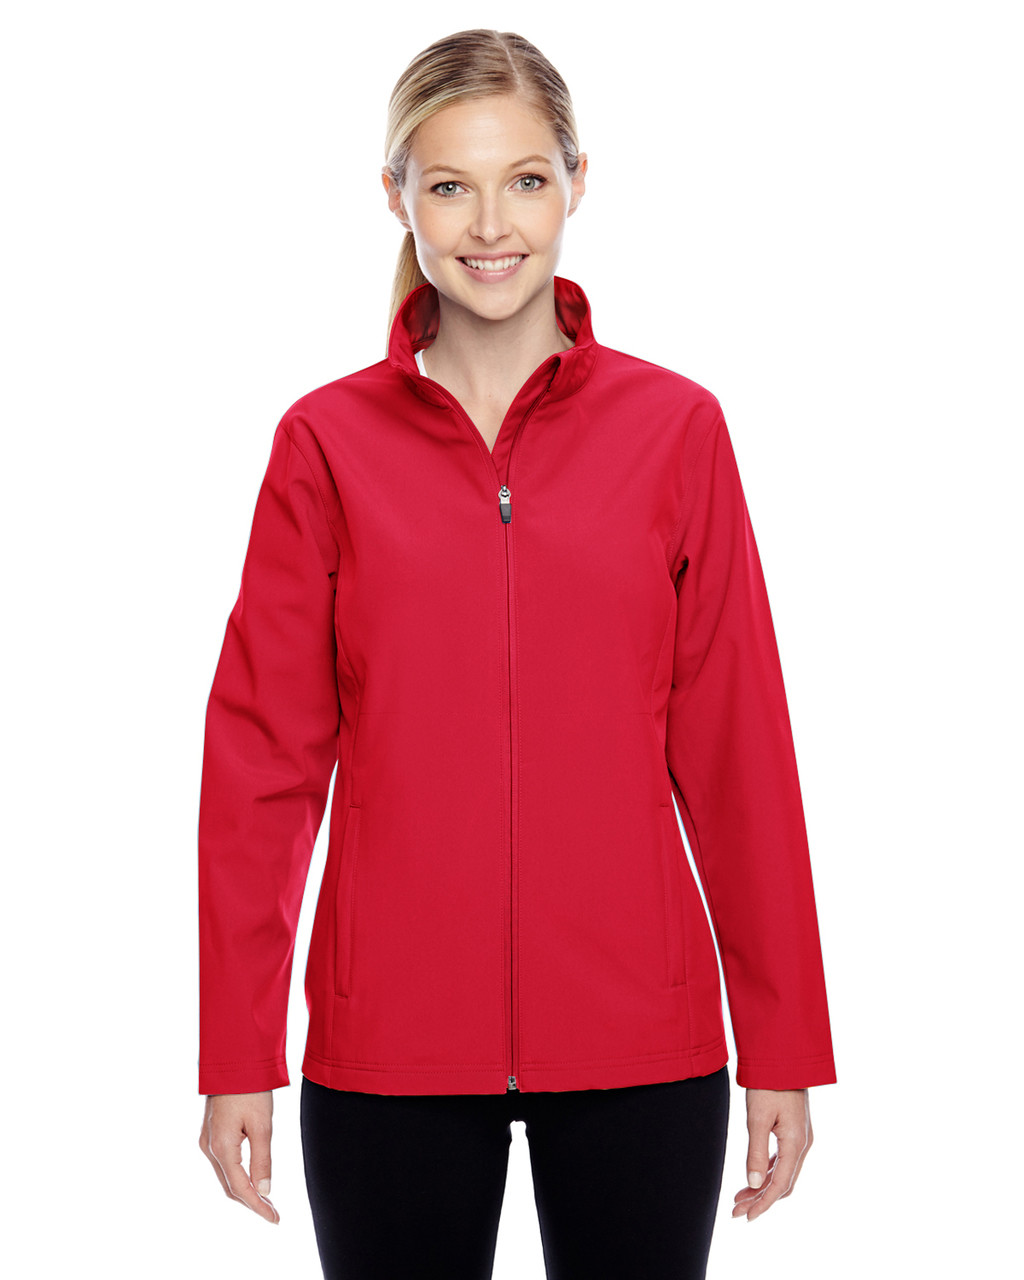 Red - TT80W Team 365 Leader Soft Shell Jacket | BlankClothing.ca